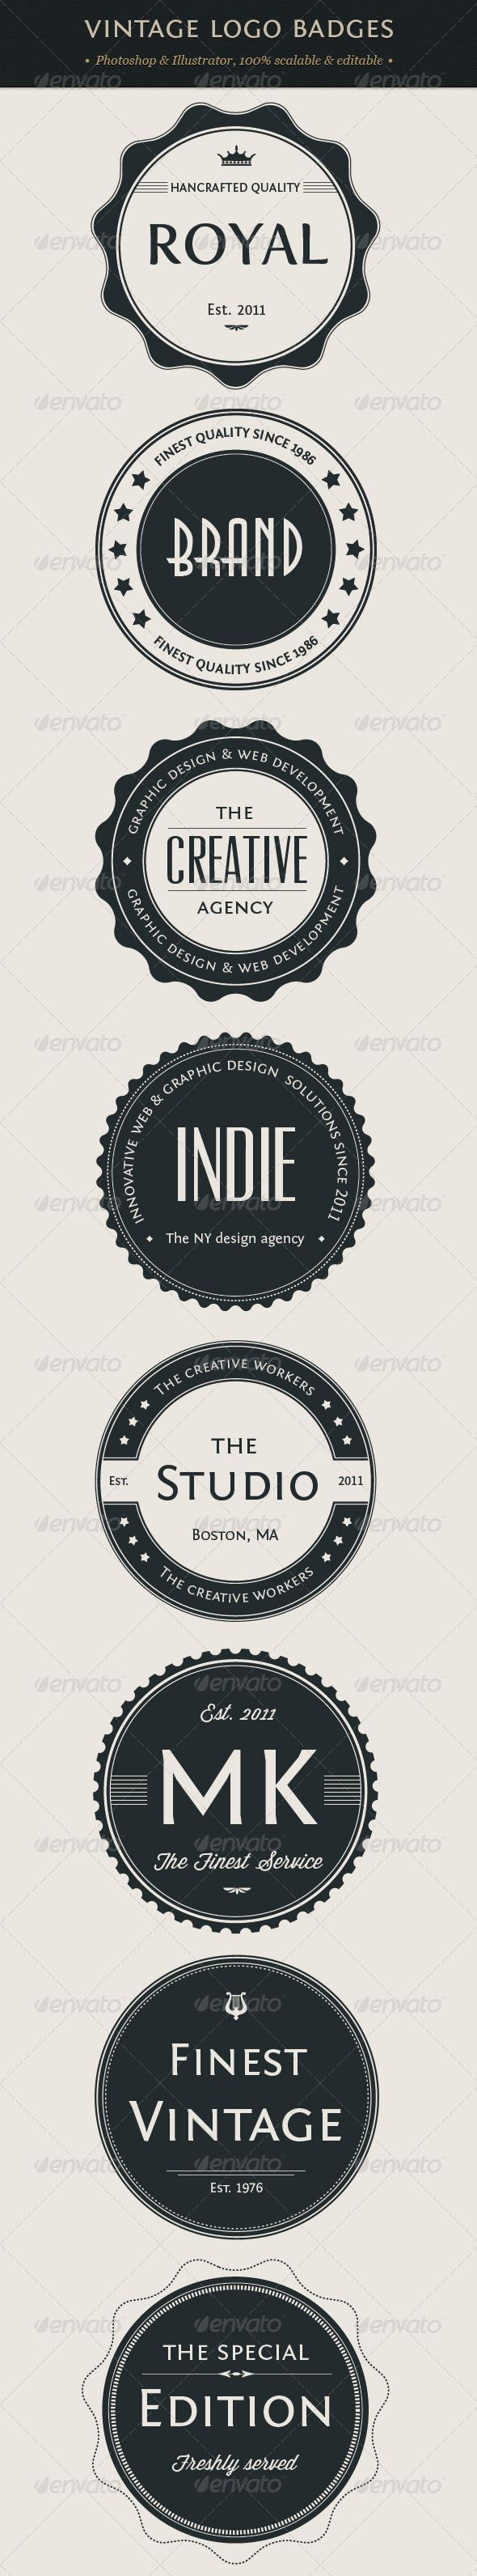 Vintage Logo Badges Set - so many cool things you can do with these.